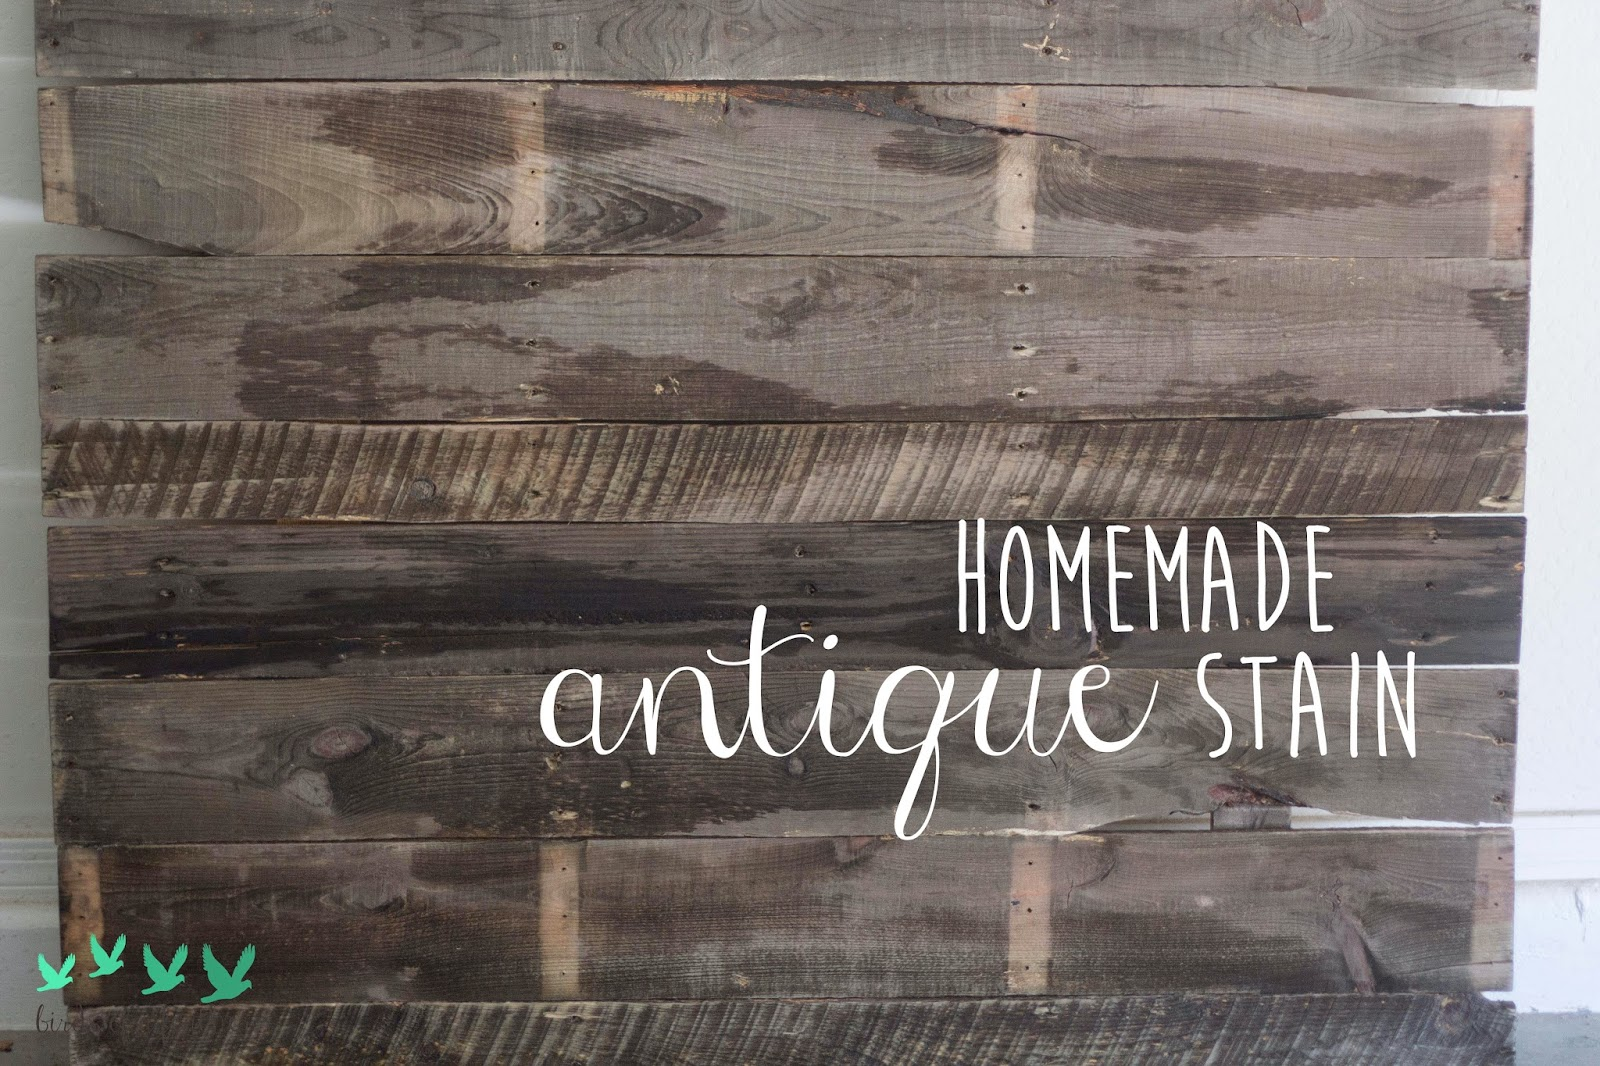 http://fiskefamily.blogspot.com/2014/08/homemade-antique-stain.html